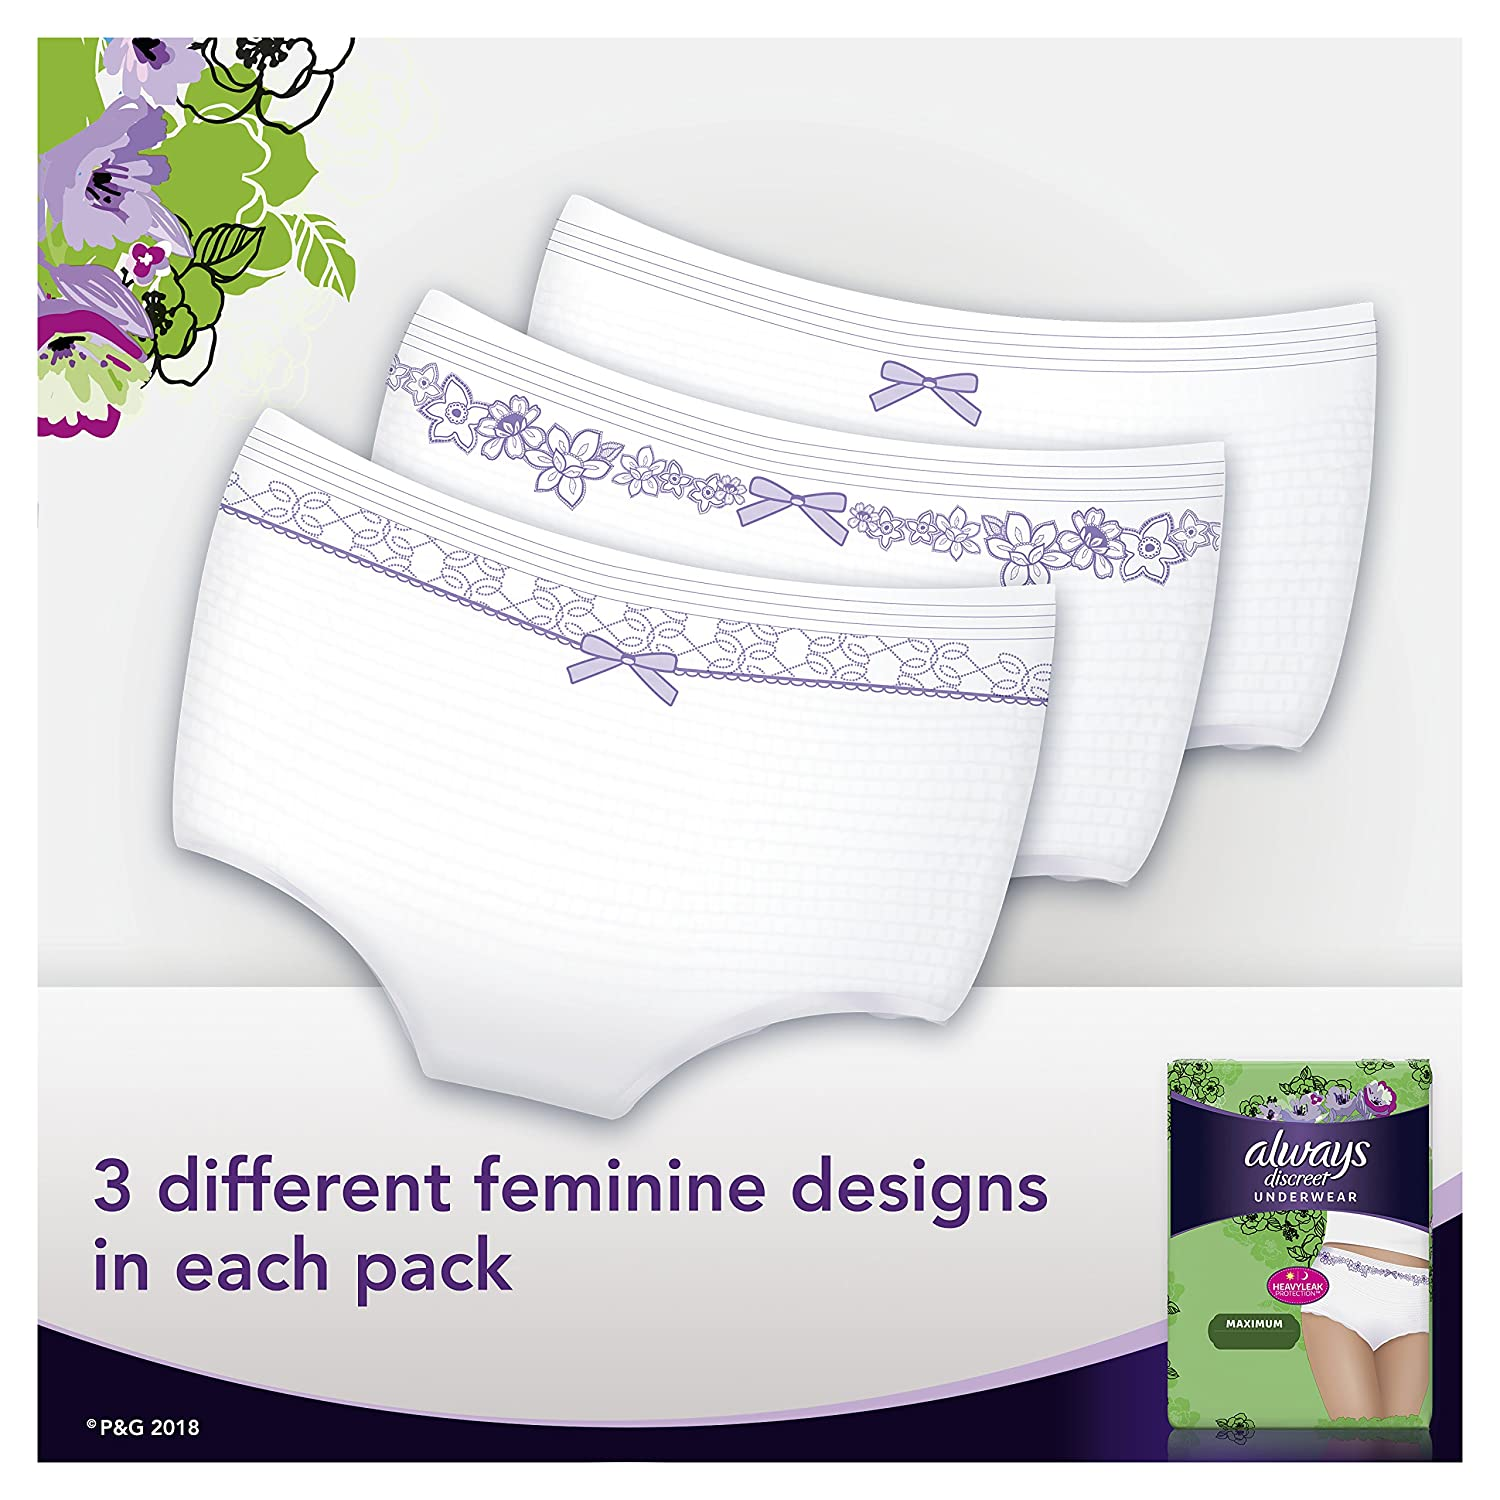 Amazon.com: Always Discreet Incontinence Underwear for Women Maximum Protection, X-Large, 52 Count: Health & Personal Care